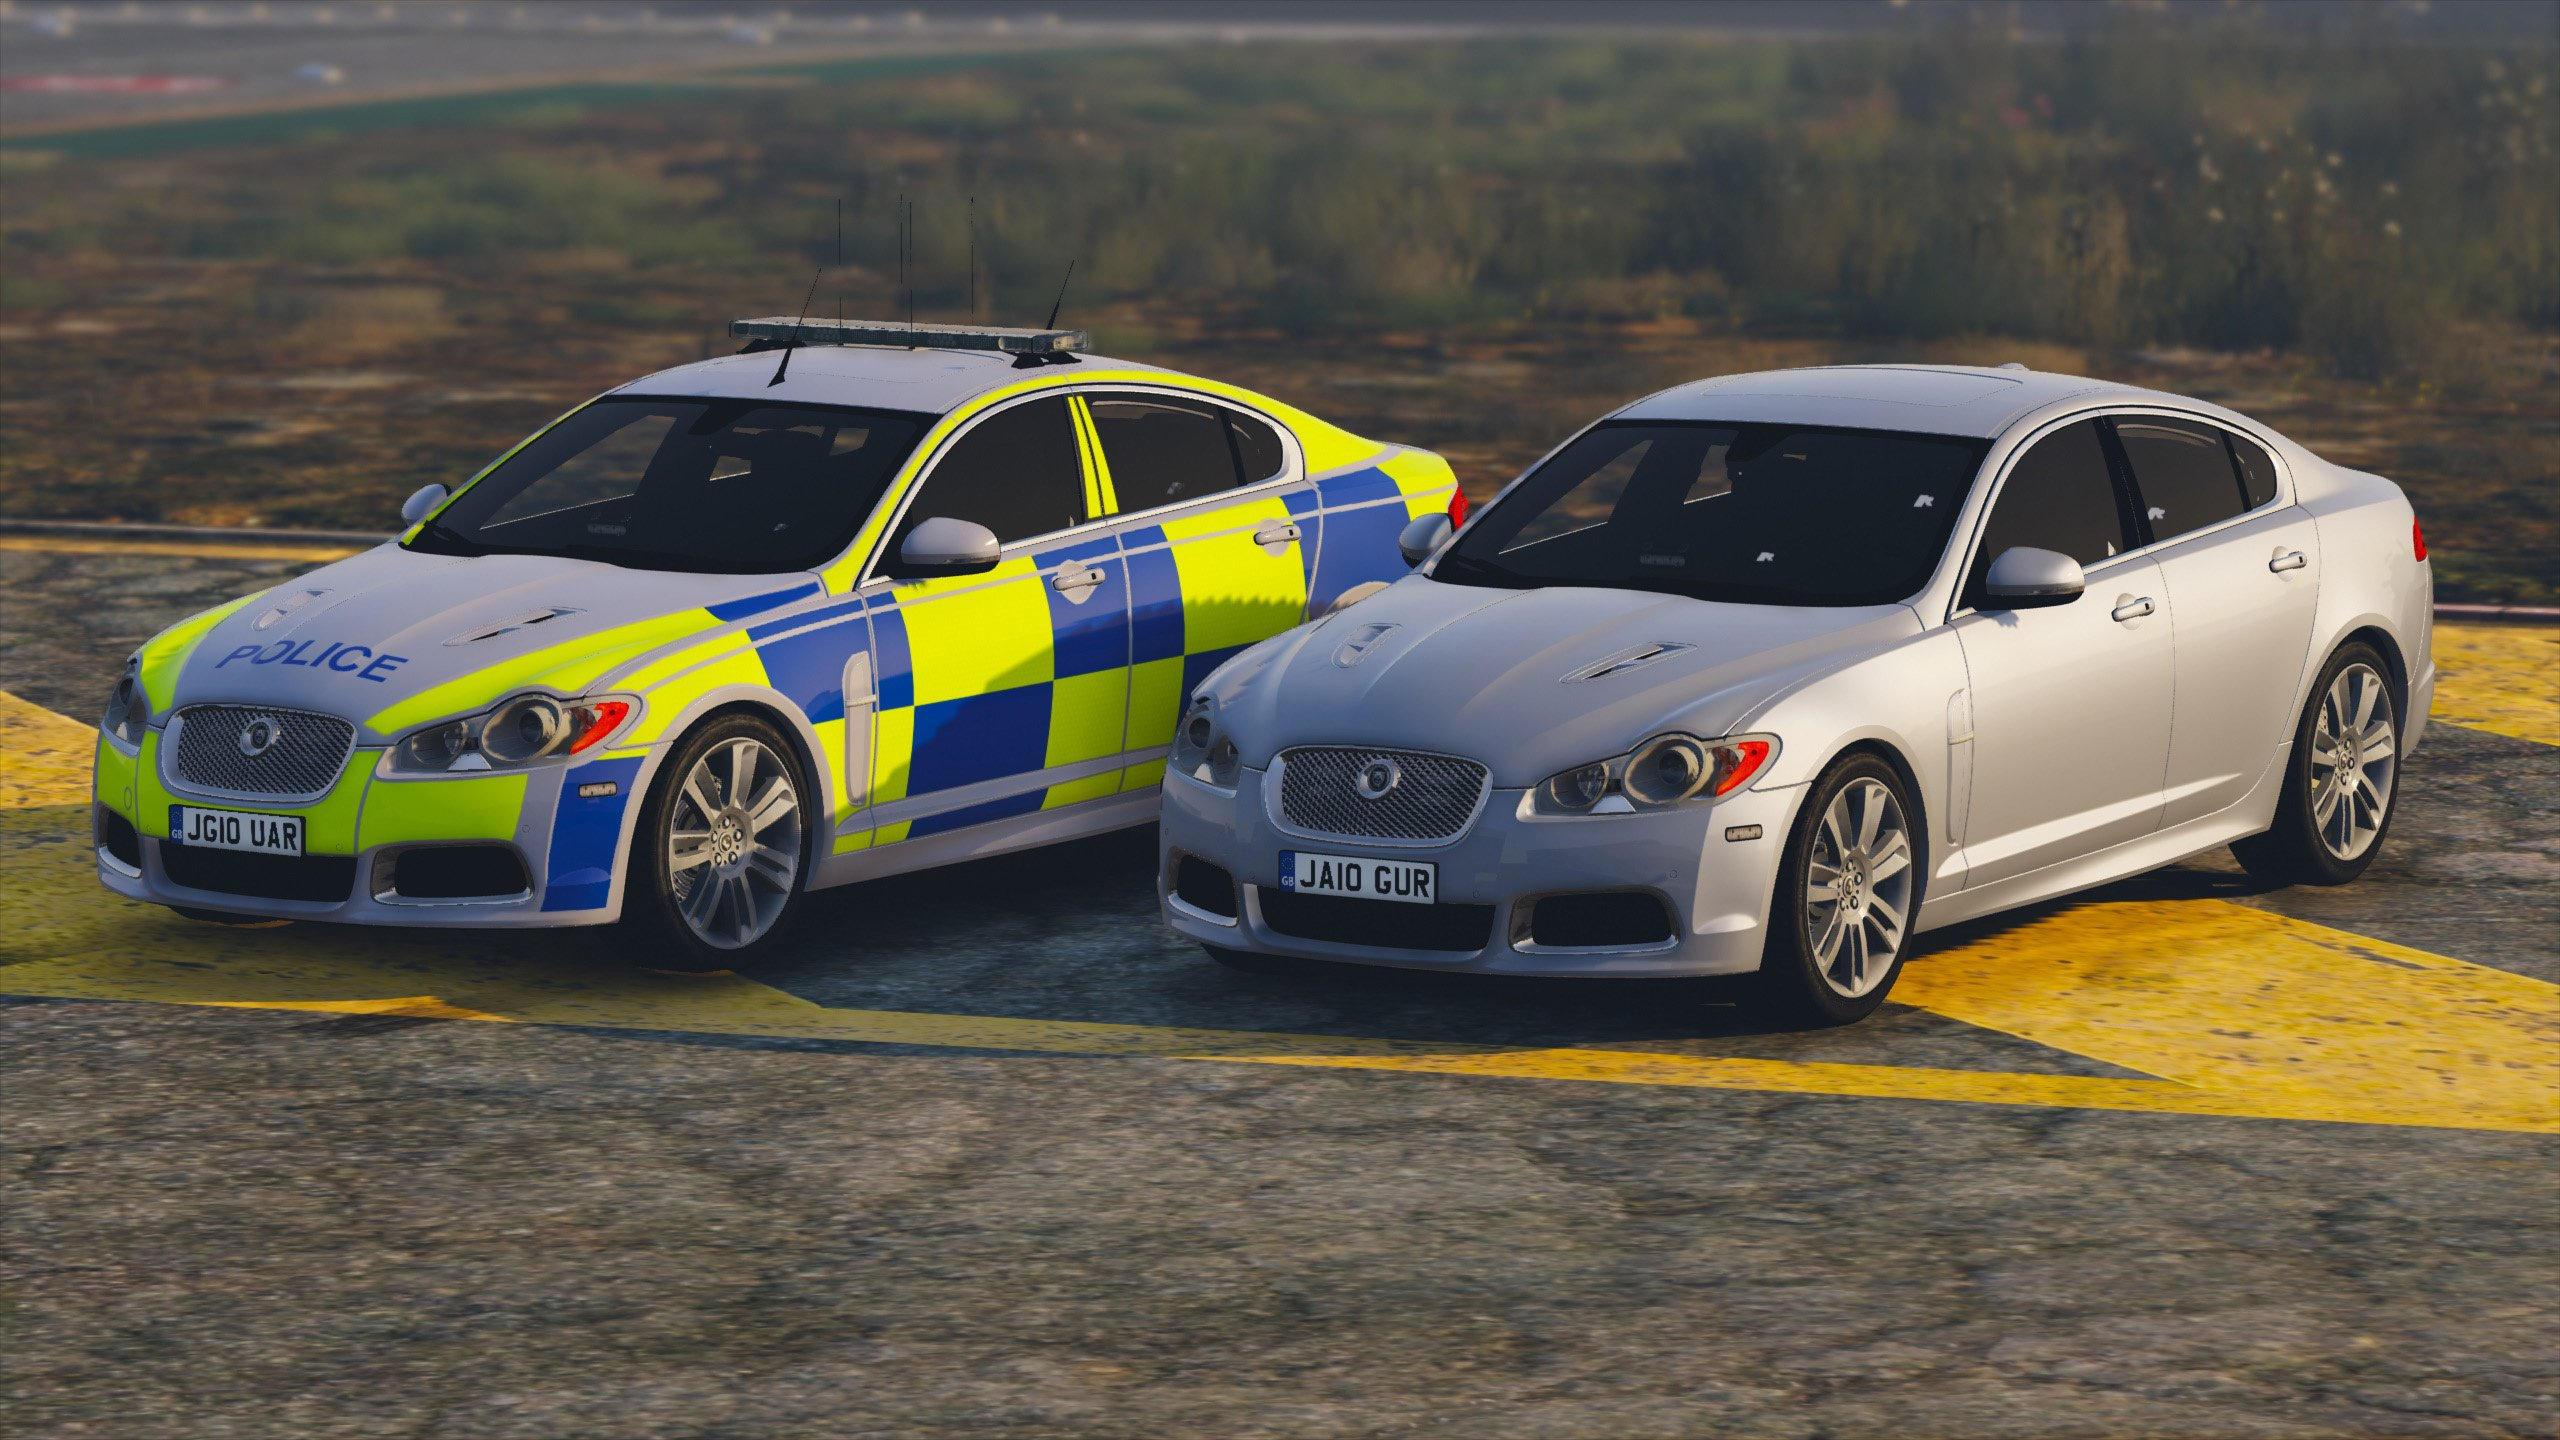 Jaguar XFR Police (Pack) - GTA5